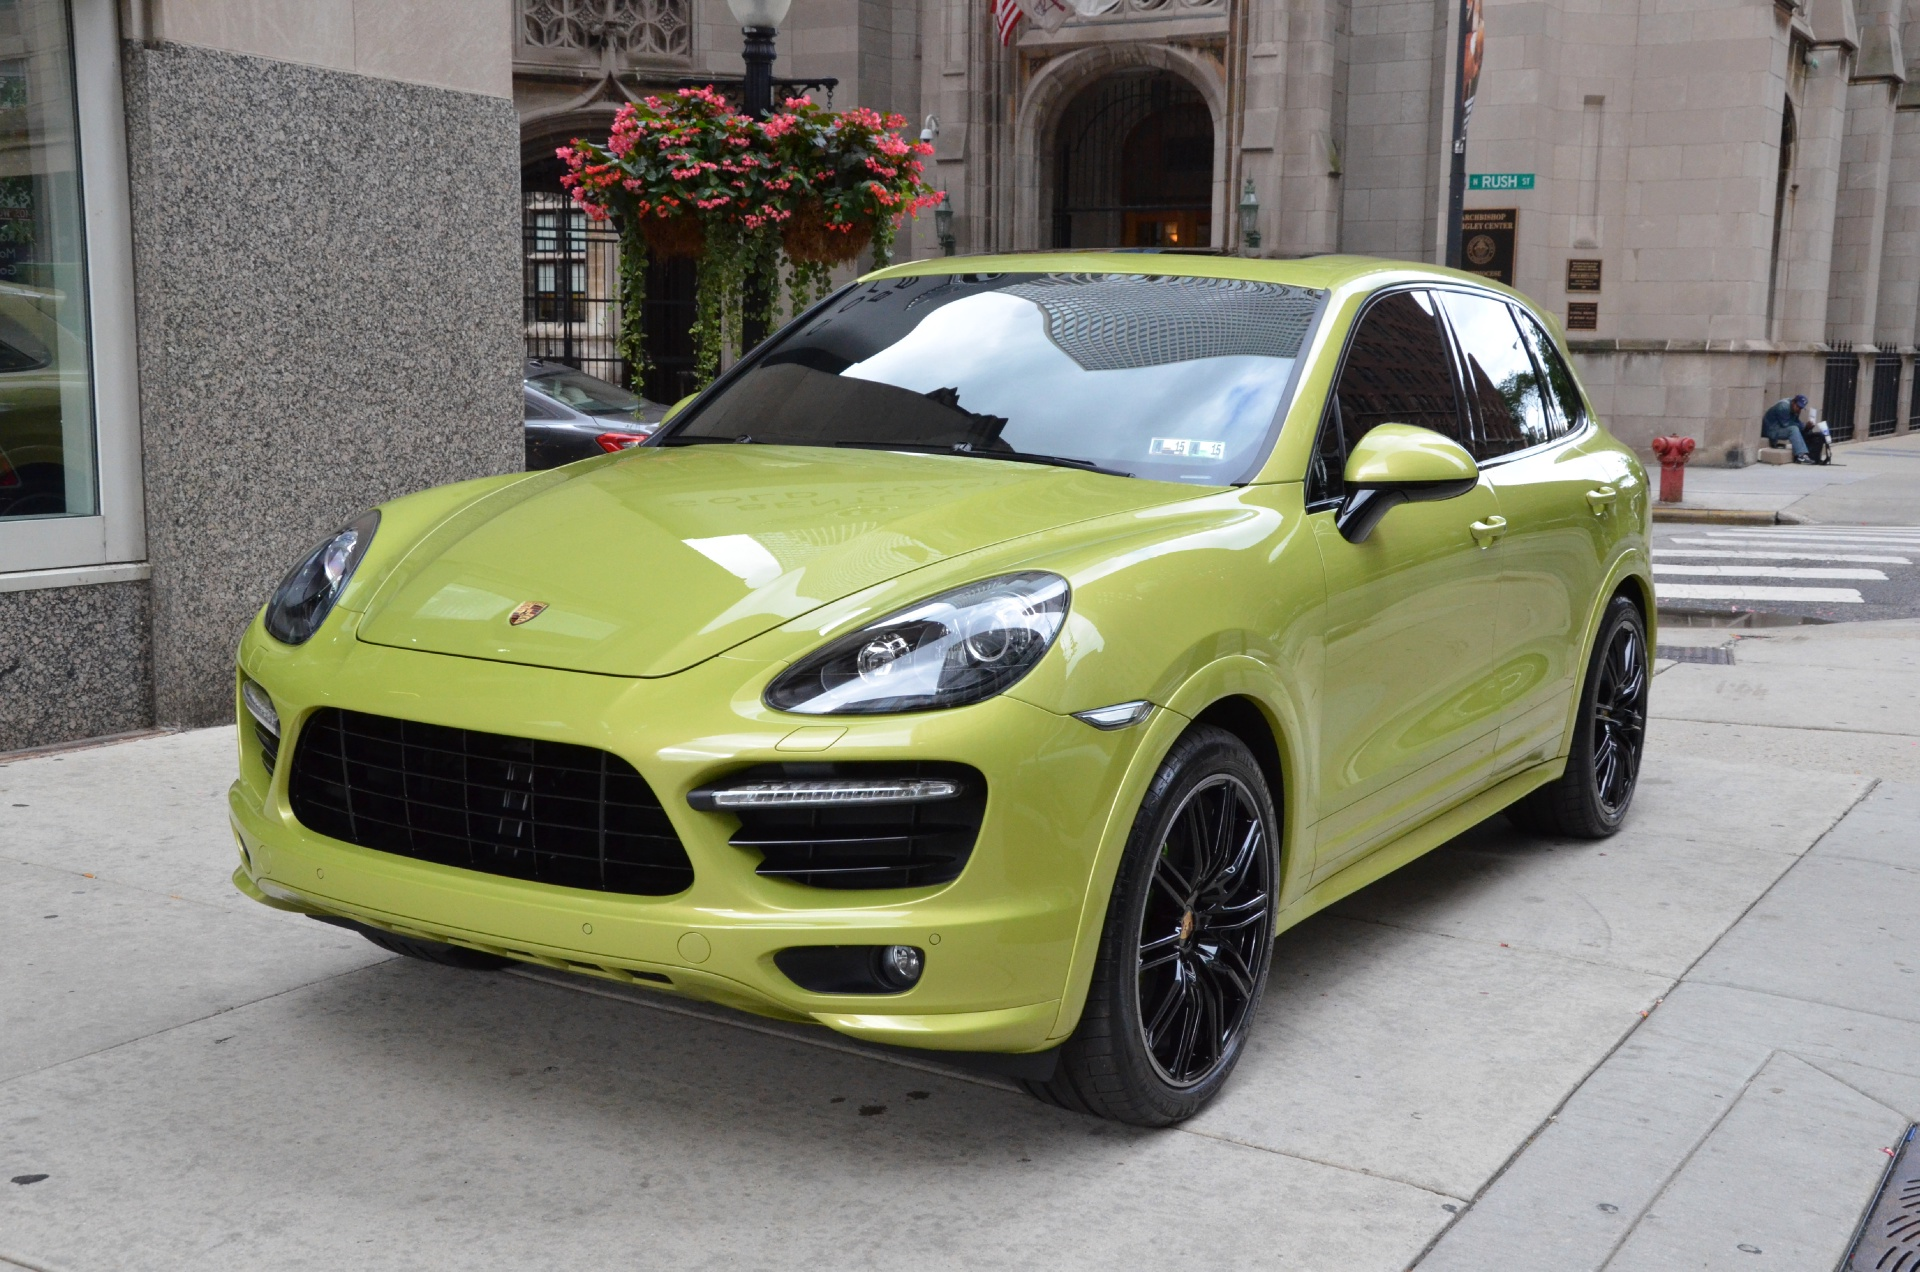 2014 porsche cayenne gts stock m129aa for sale near chicago il il porsche dealer. Black Bedroom Furniture Sets. Home Design Ideas